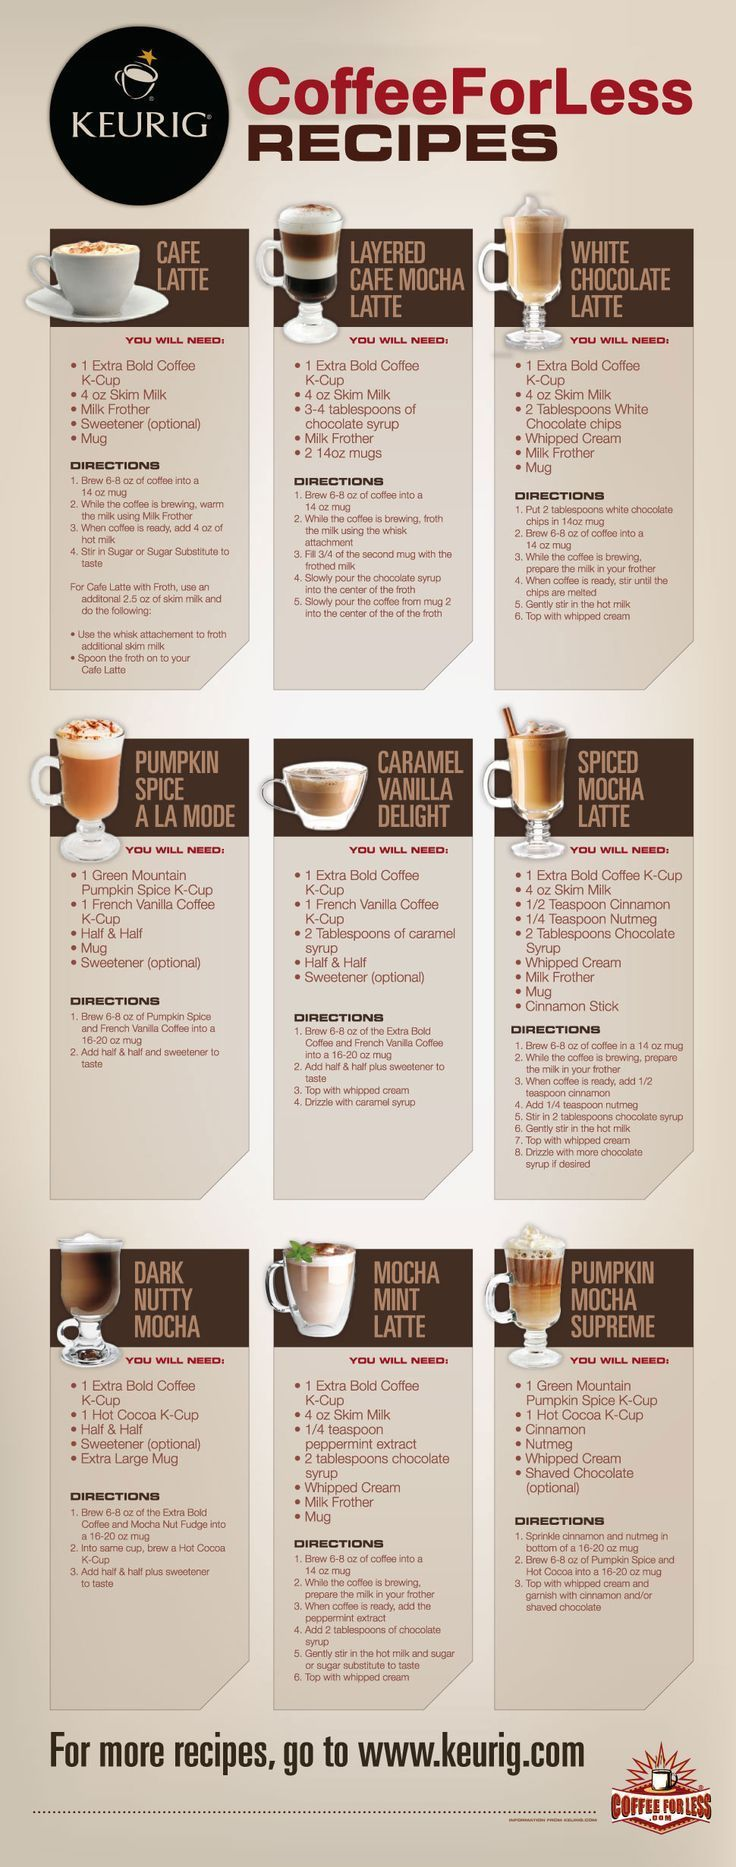 Coffee drinks recipes | 9 Keurig K-Cup coffee recipes for unique coffee drinks. I thought you might be interested in this!